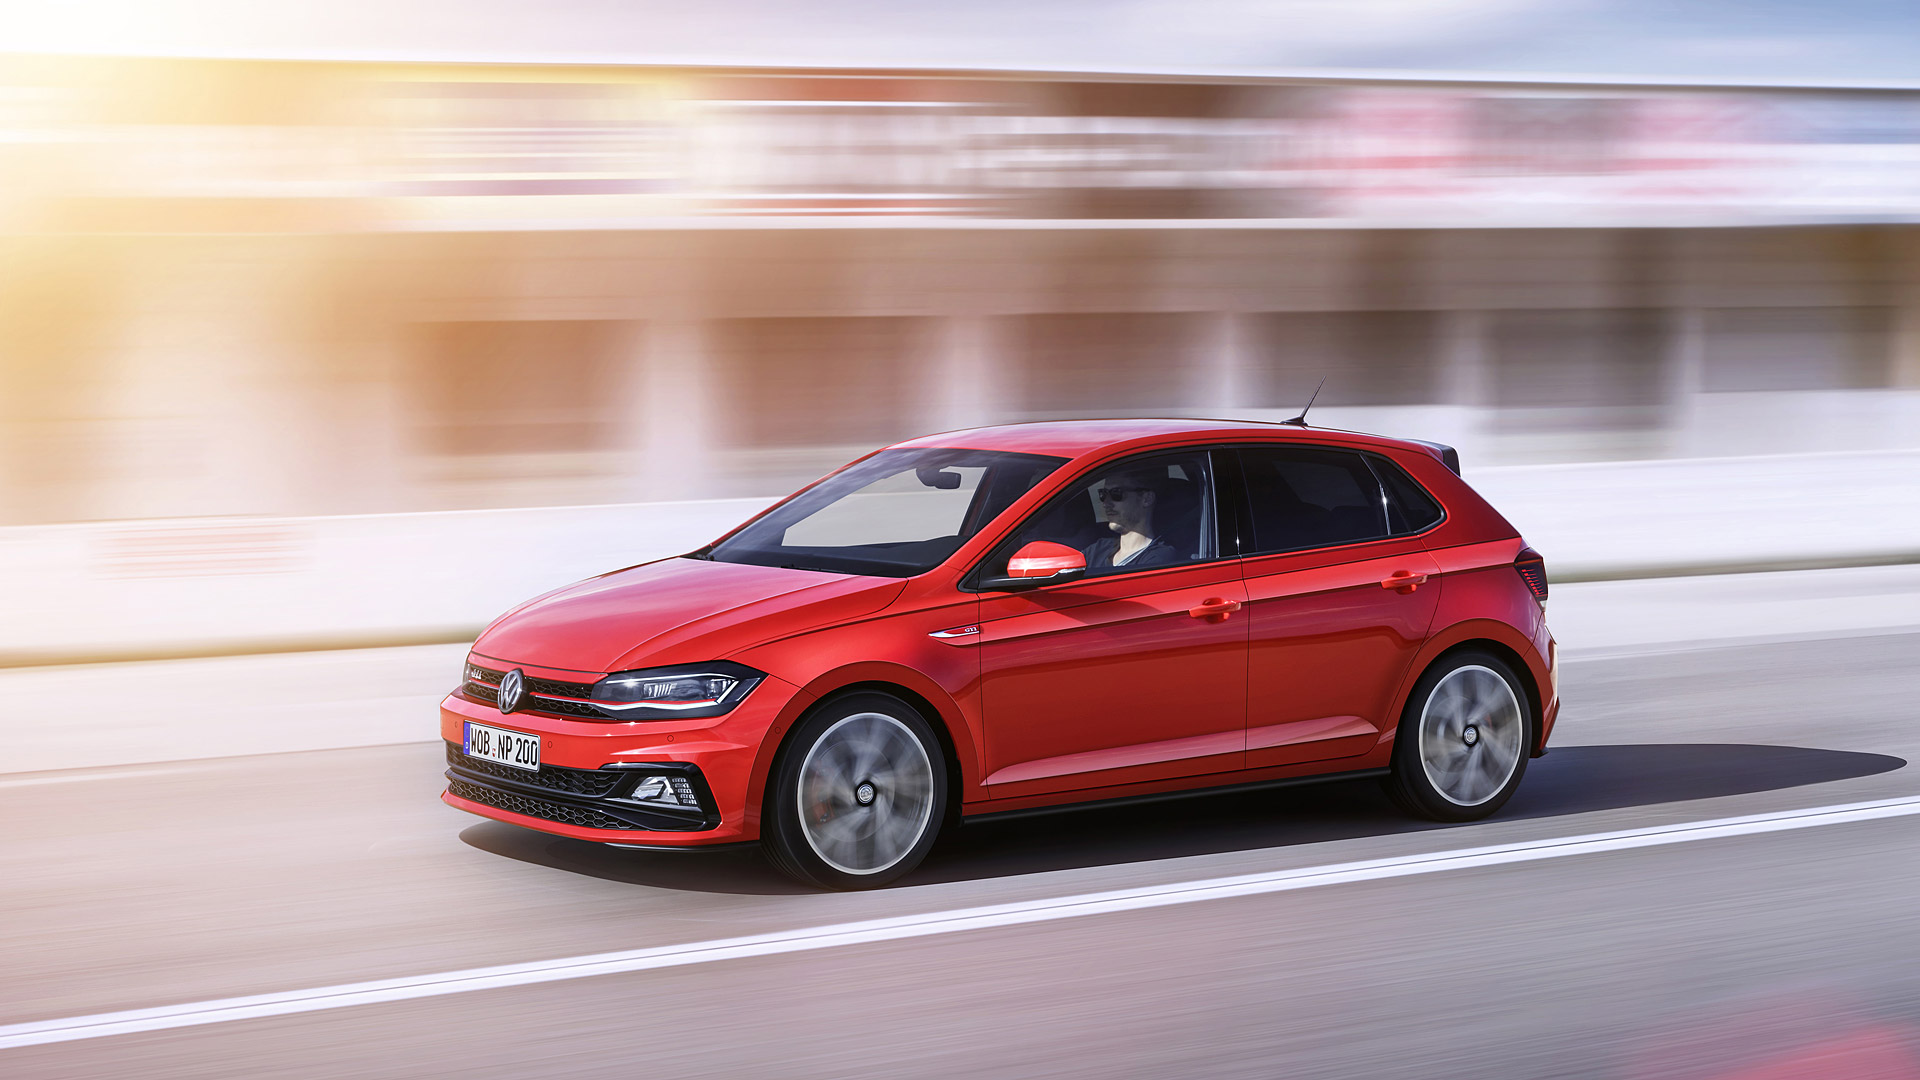 Vw Polo Gti 2018 1920x1080 Download Hd Wallpaper Wallpapertip